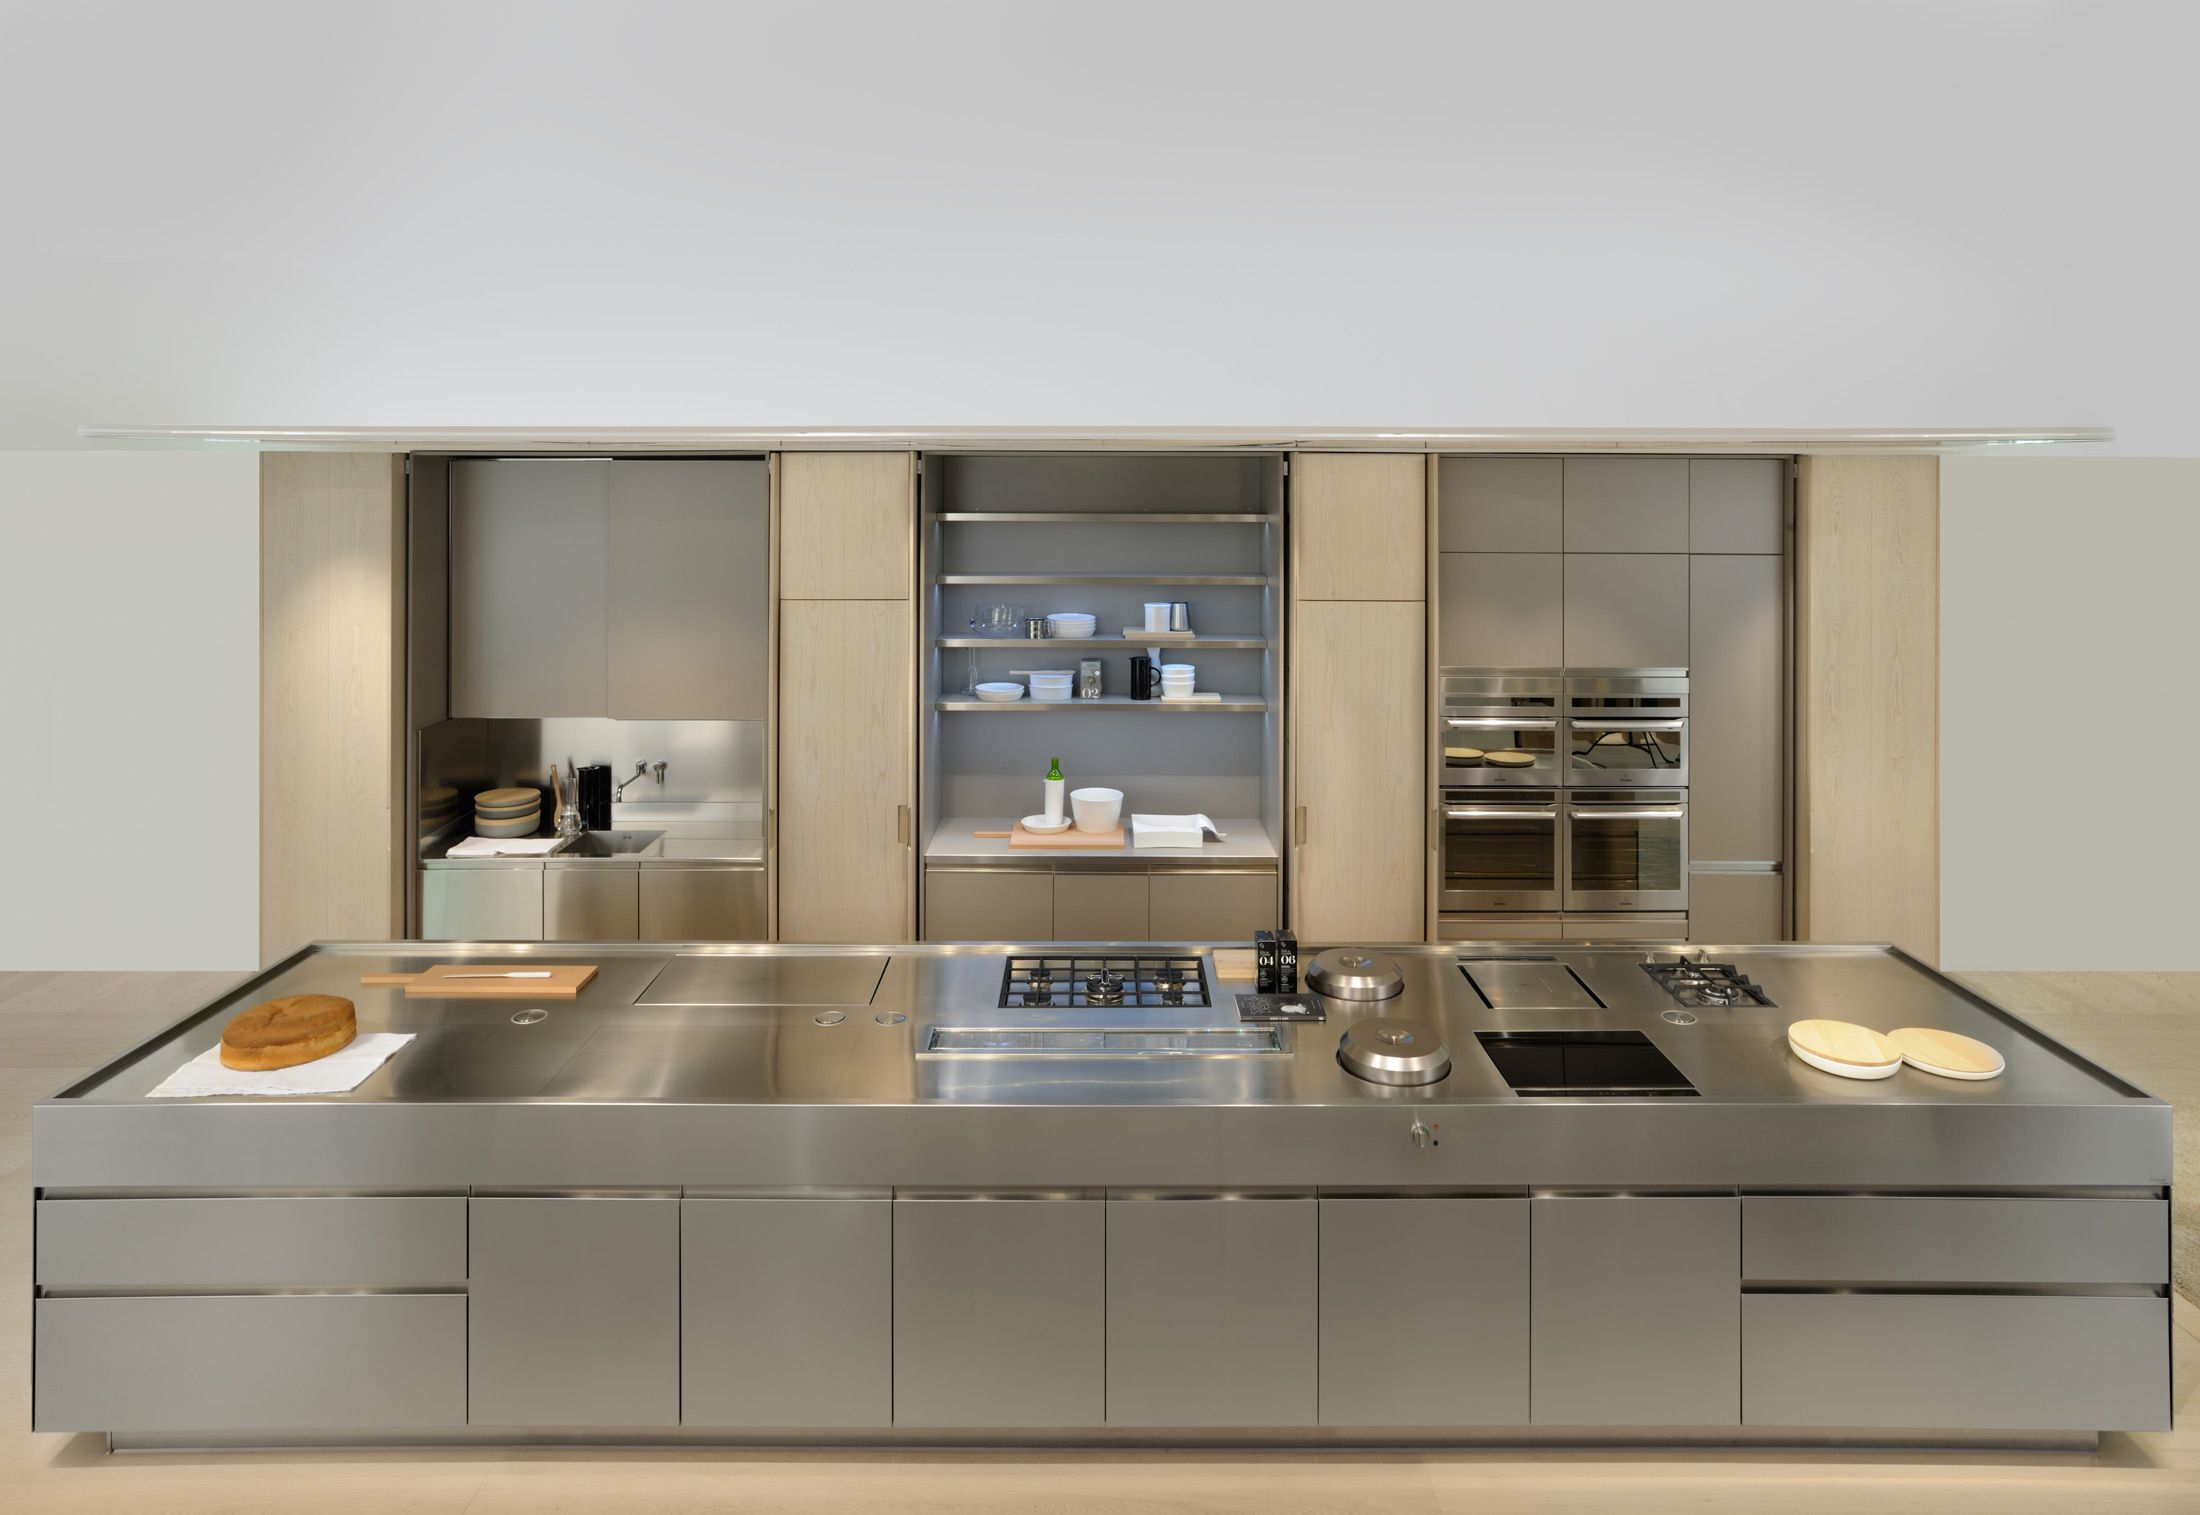 Discover All The Information About The Product Contemporary Kitchen /  Stainless Steel / Marble / Oak CONVIVIUM   Arclinea And Find Where You Can  Buy It.